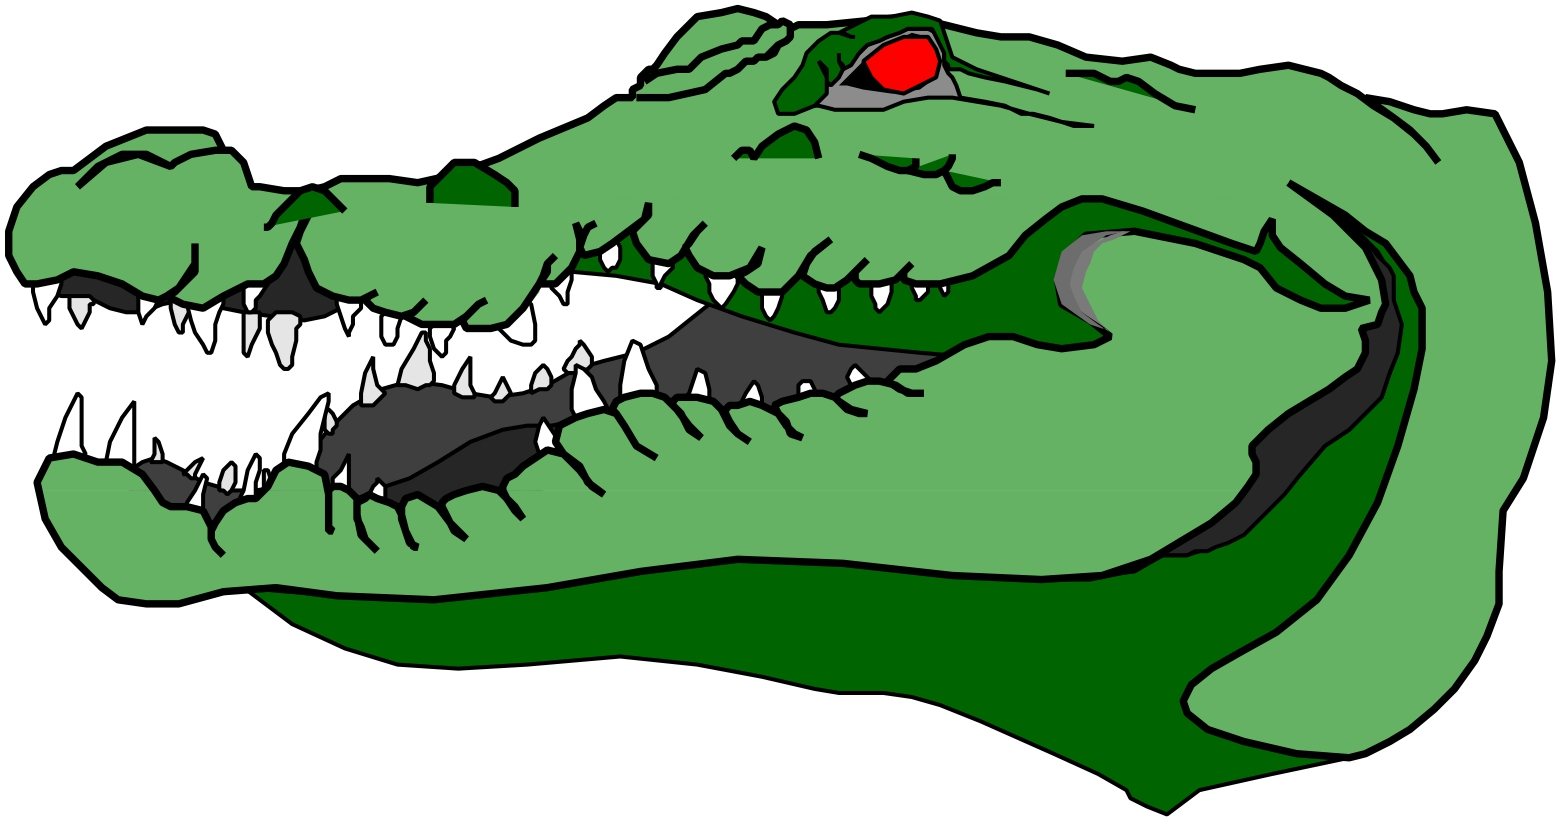 Alligator clipart mean Images about Pinterest  gator